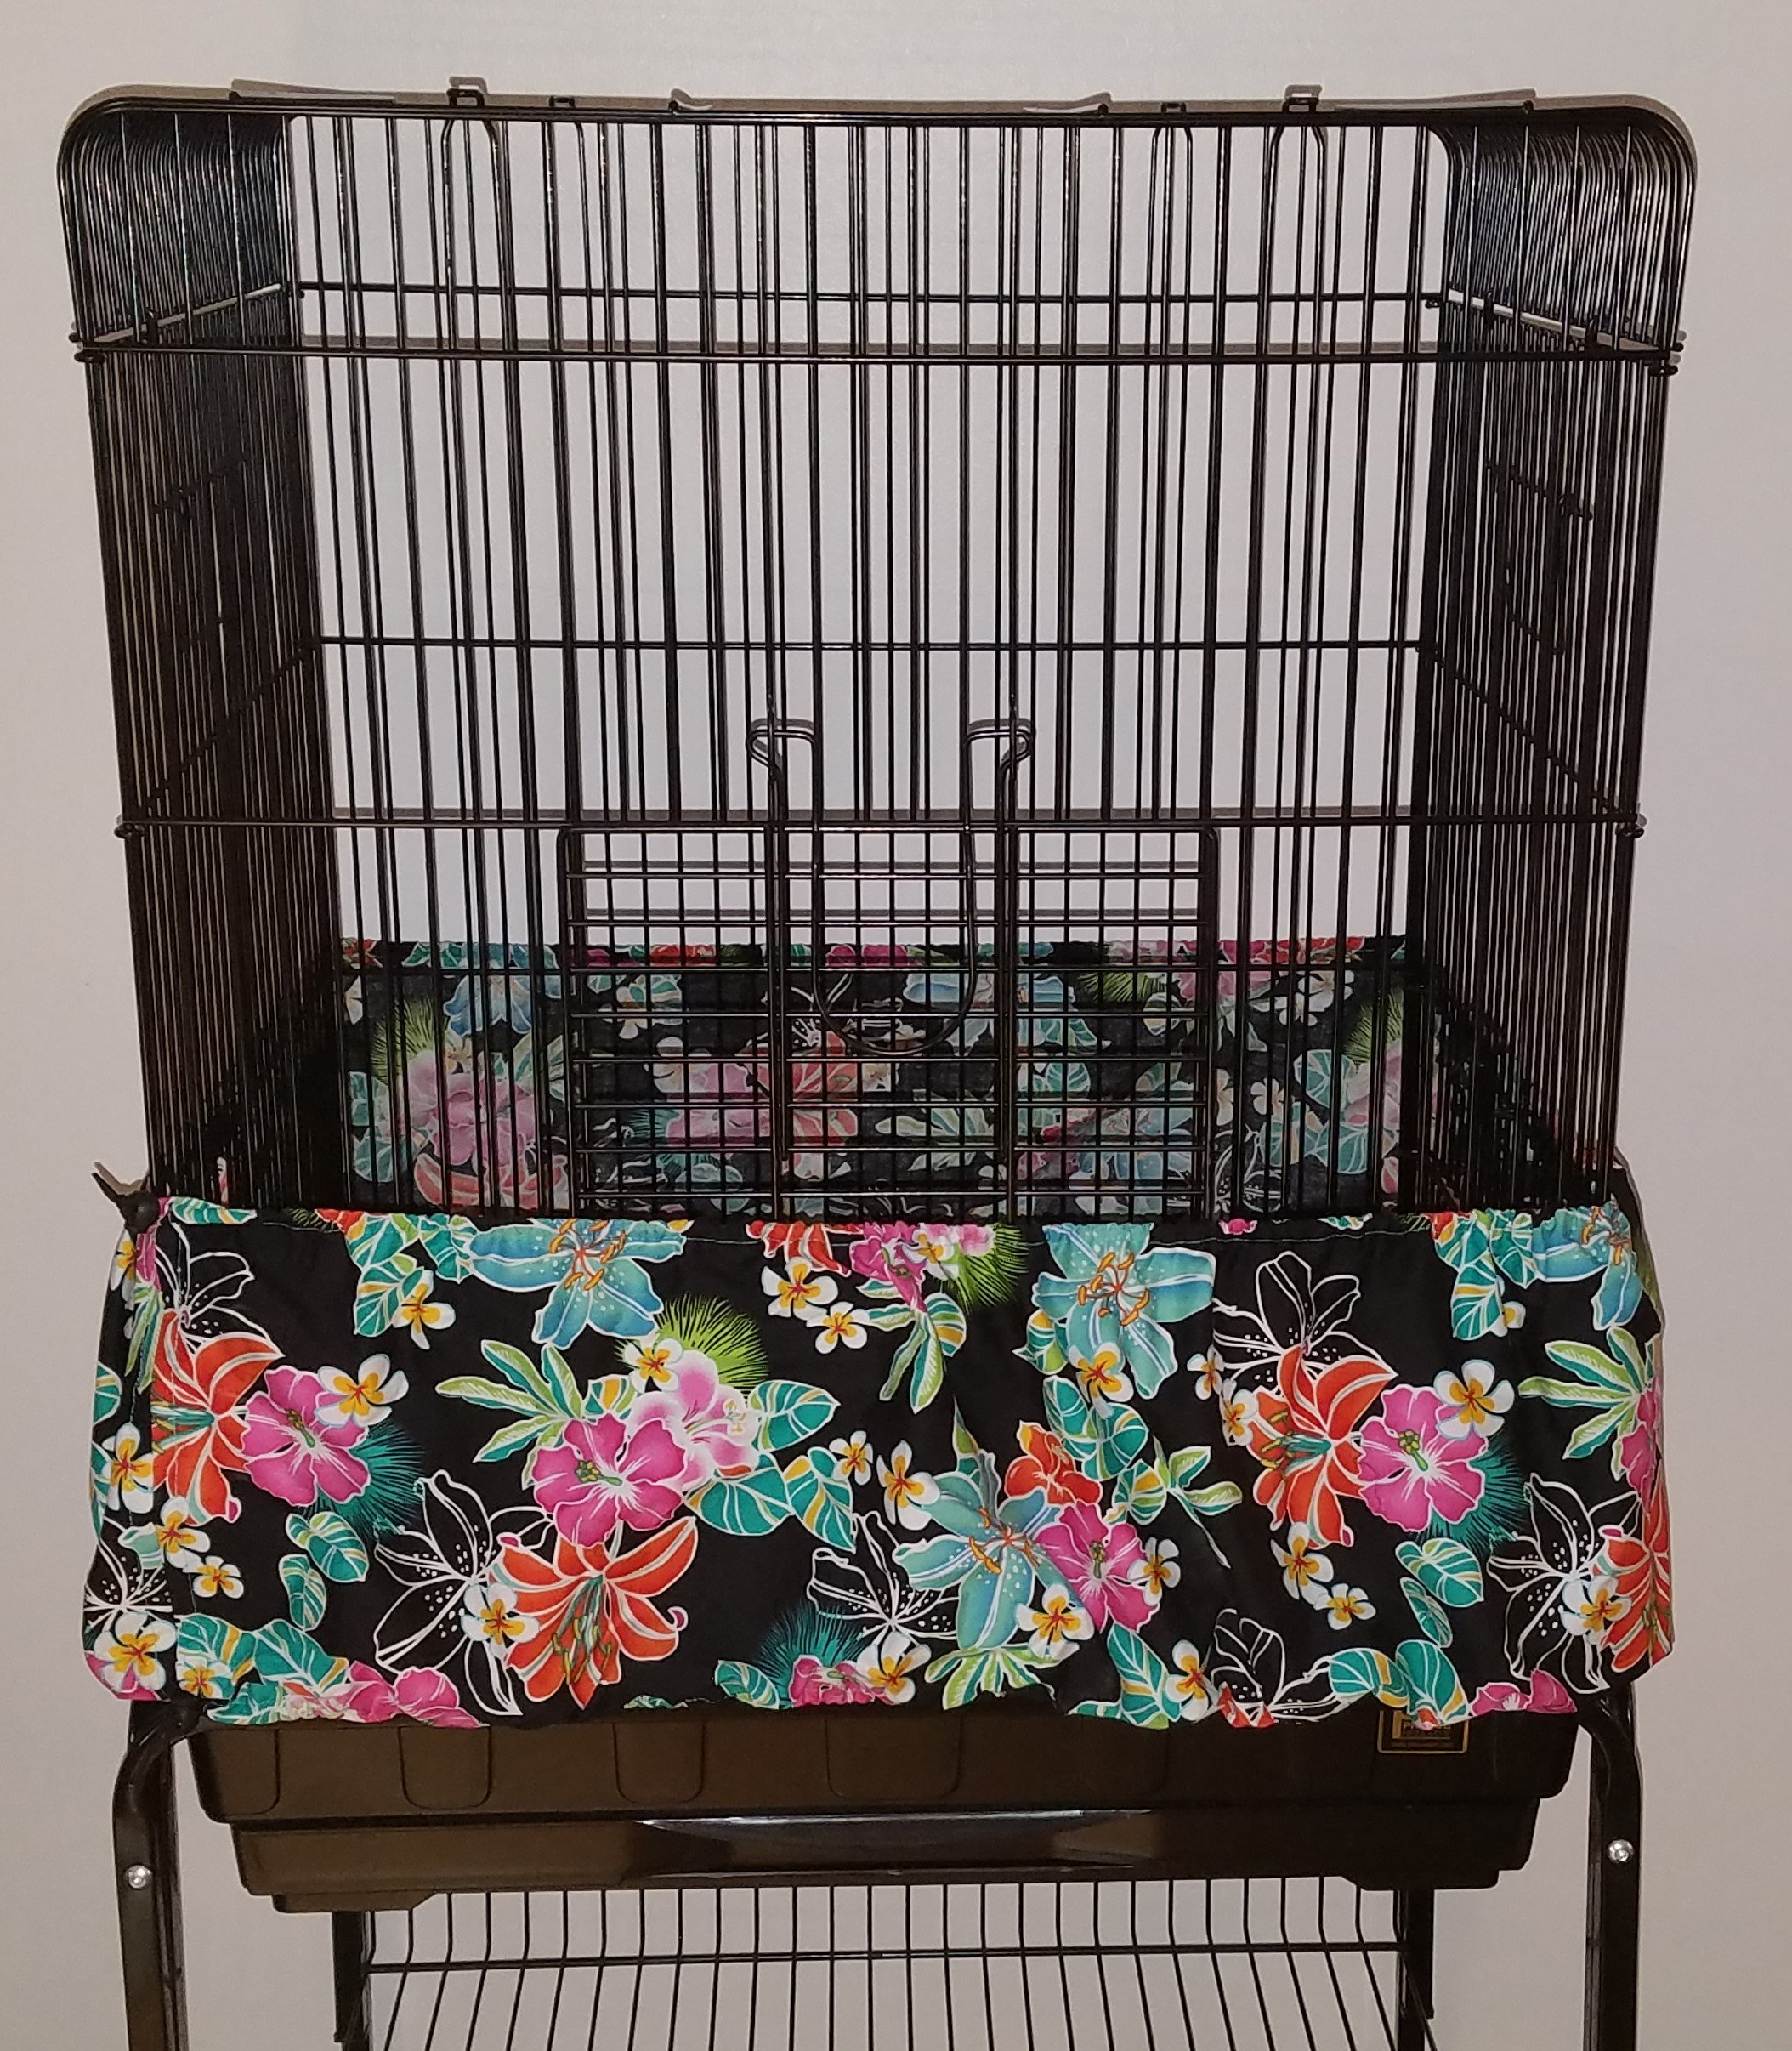 Penn Seed Seed Guard and Catcher Bird Cage Skirt - Hibiscus Lily, Medium (44''-88'' Cage Circumference)